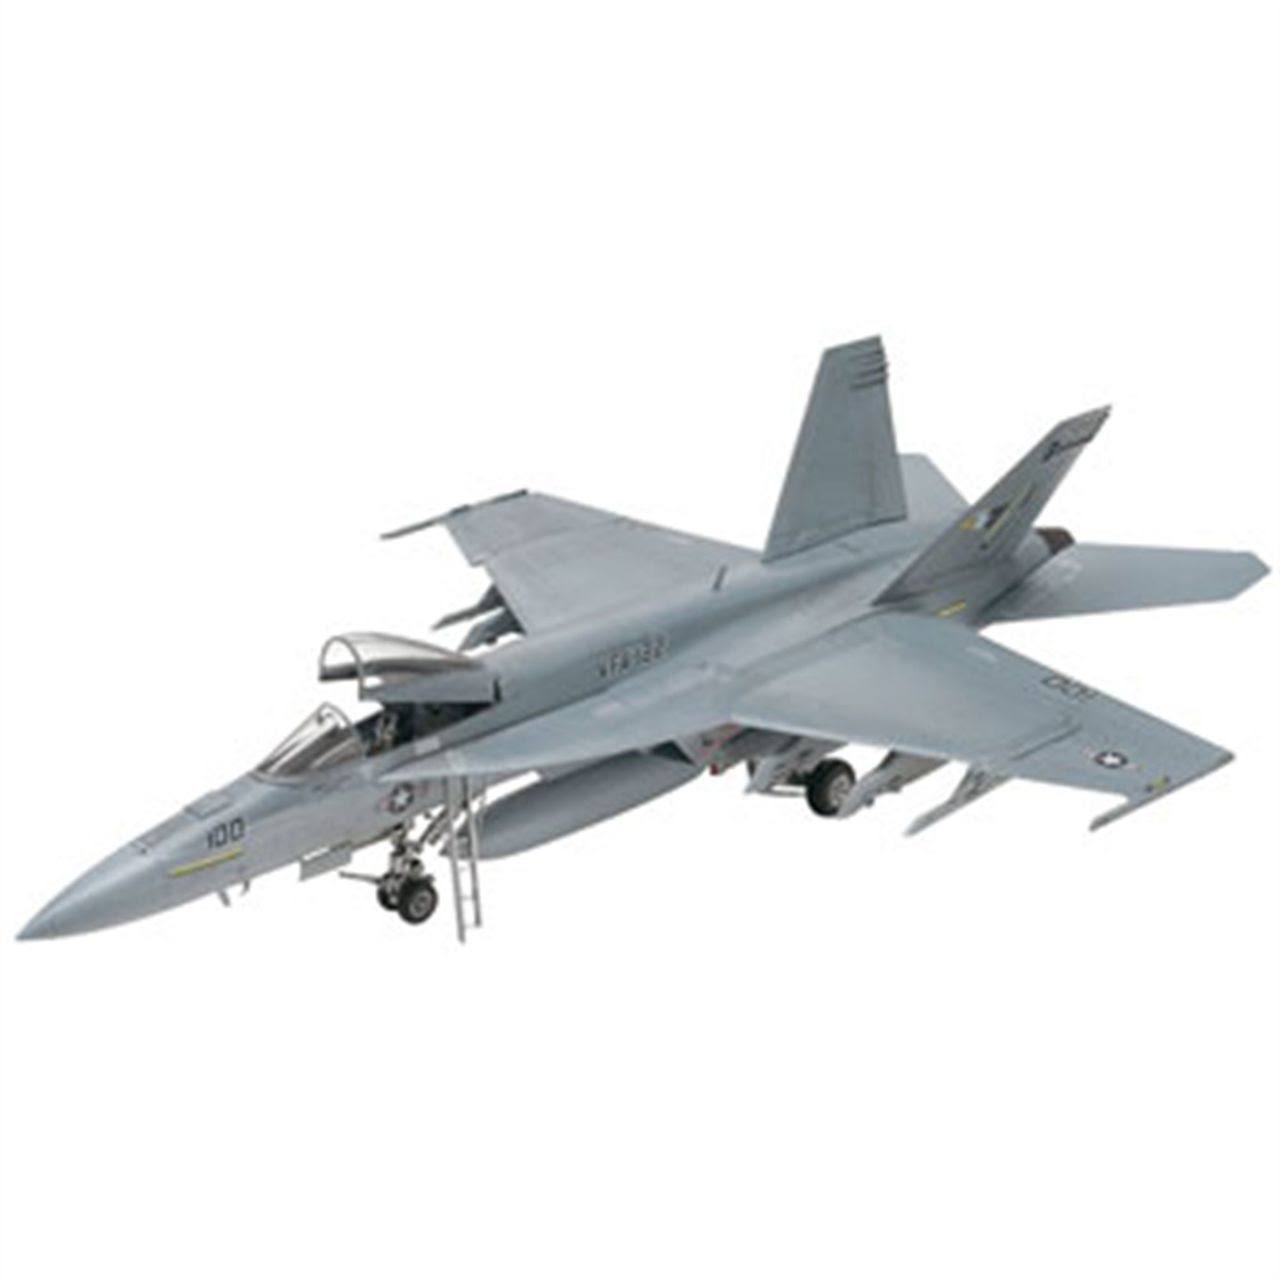 Revell 1:48 Scale F/A-18E Super Hornet Plastic Model Kit